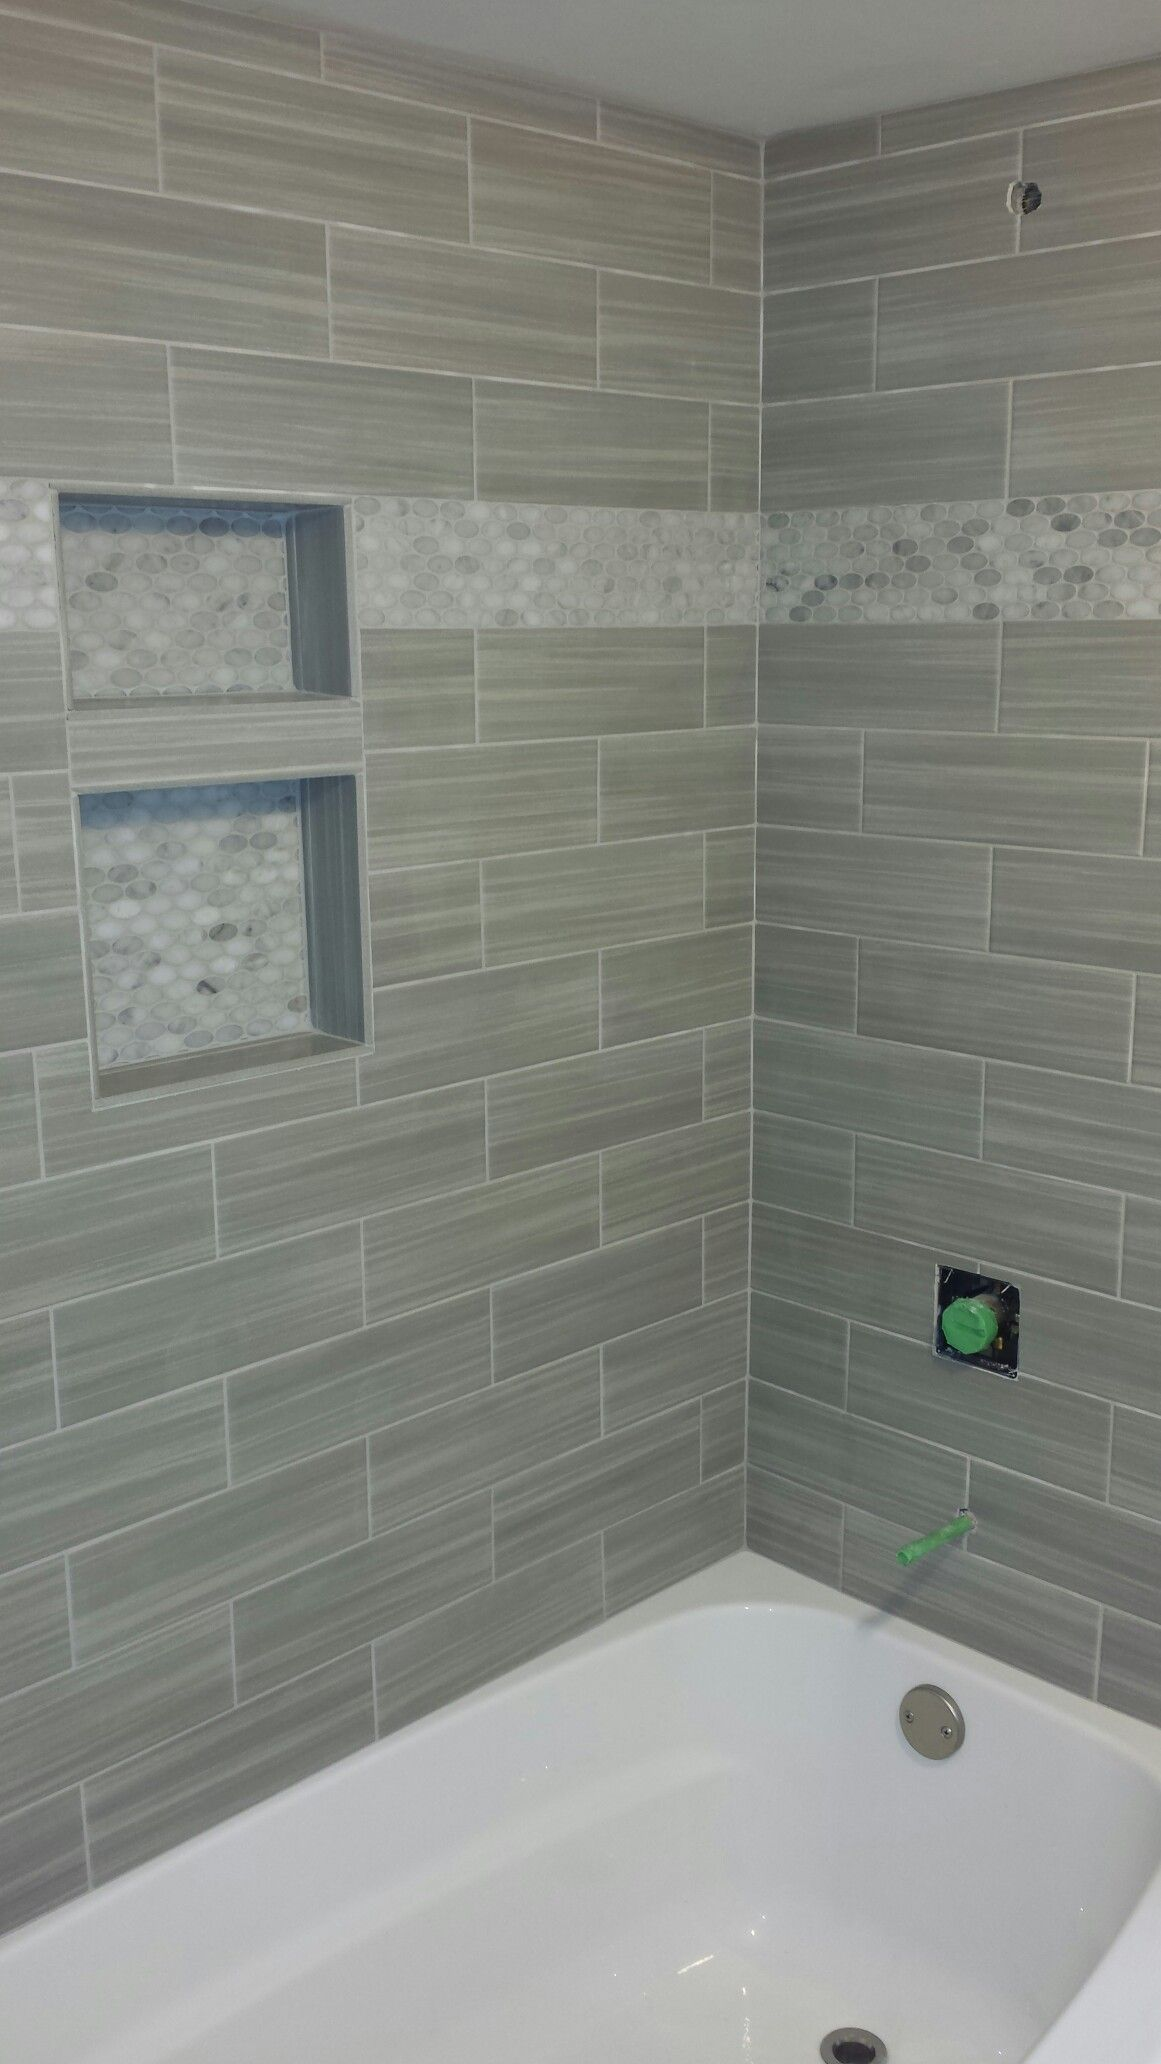 Bathroom shower niche mosaic border linear tile subway tile bathroom shower niche mosaic border linear tile subway tile dailygadgetfo Images